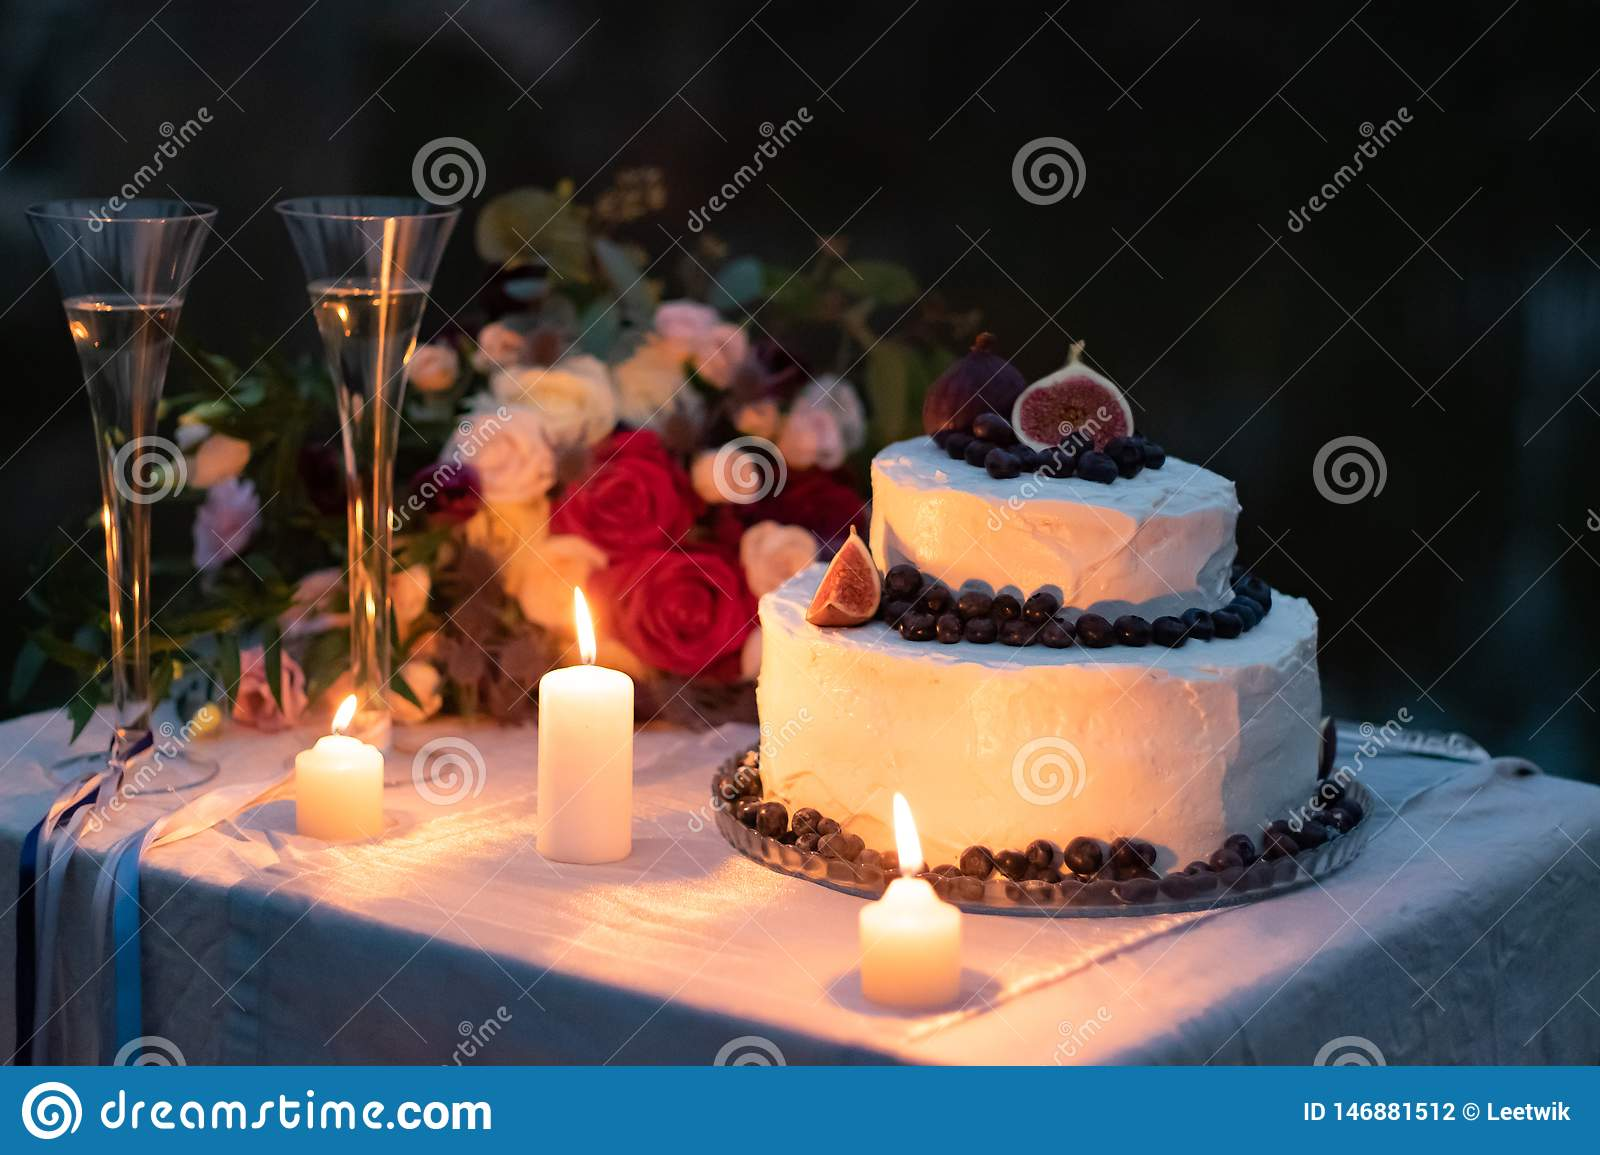 Wedding decorations. cake in white glaze with a decor of blueberries and figs on the table in the evening with glasses, lit